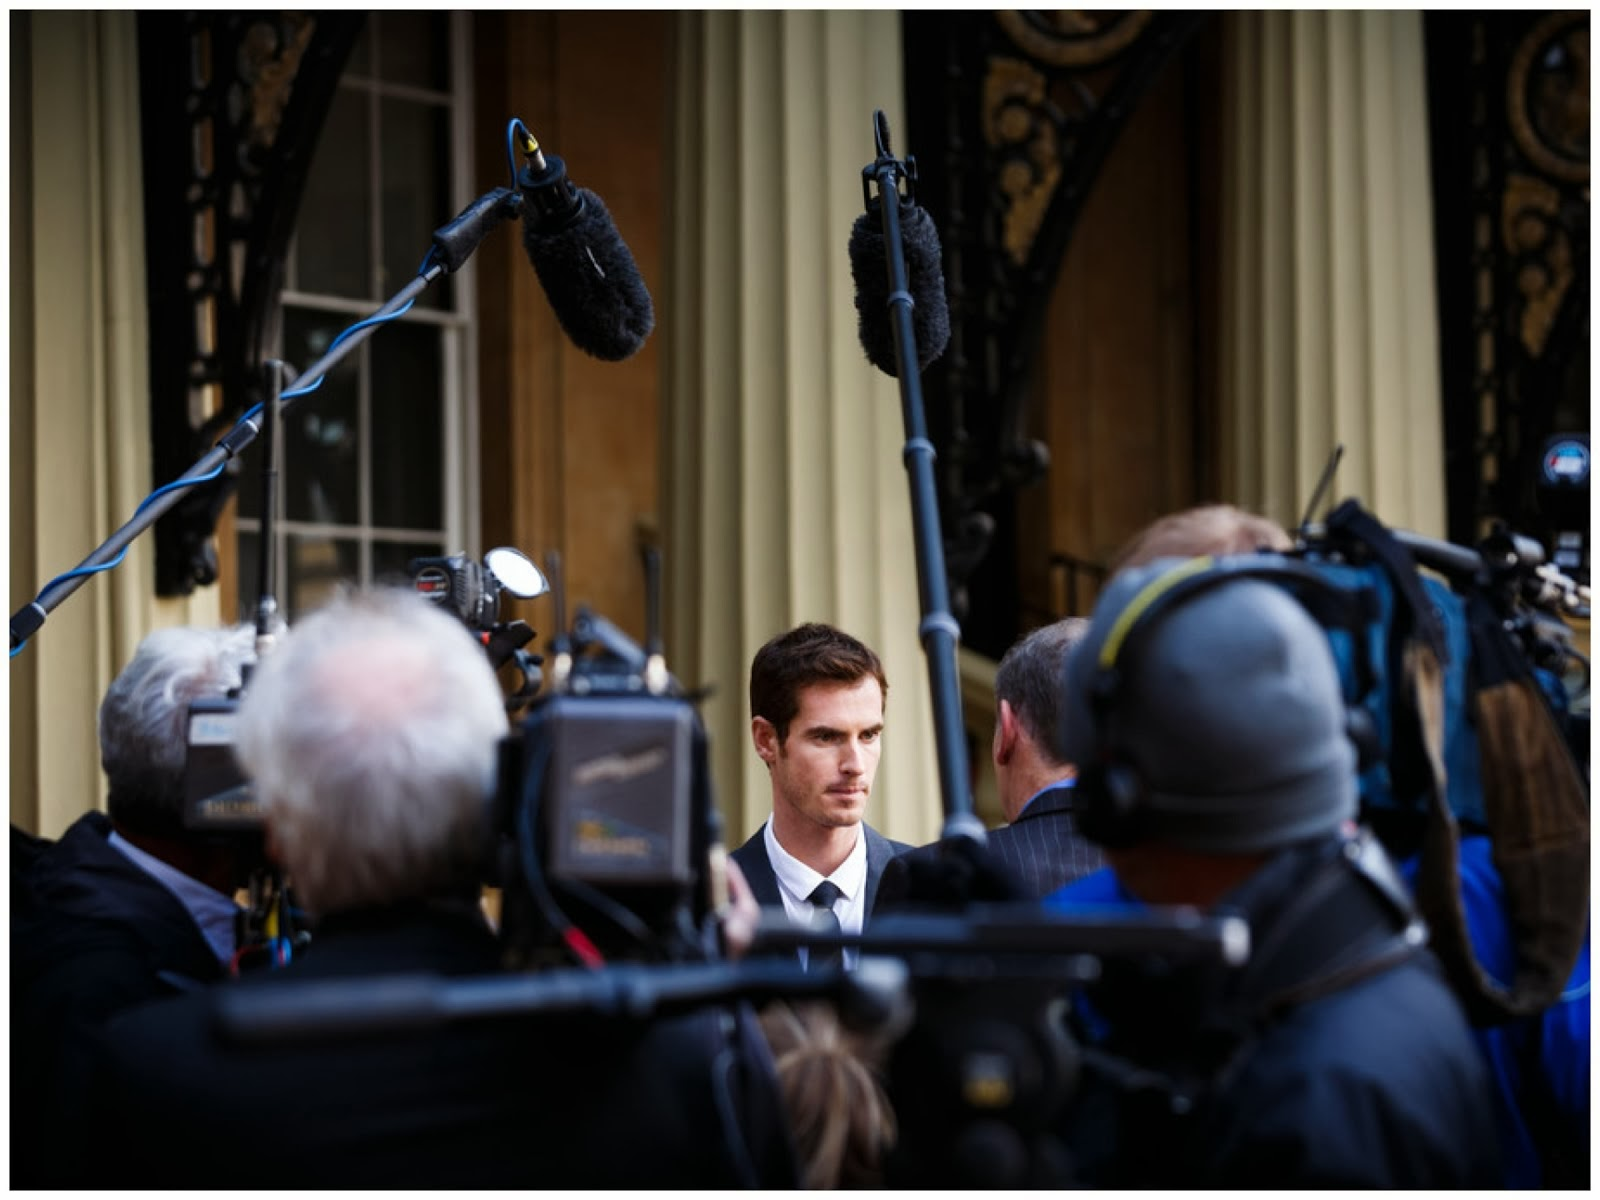 00O00 Menswear Blog: Andy Murray OBE in Burberry - Investitures at Buckingham Palace October 2013